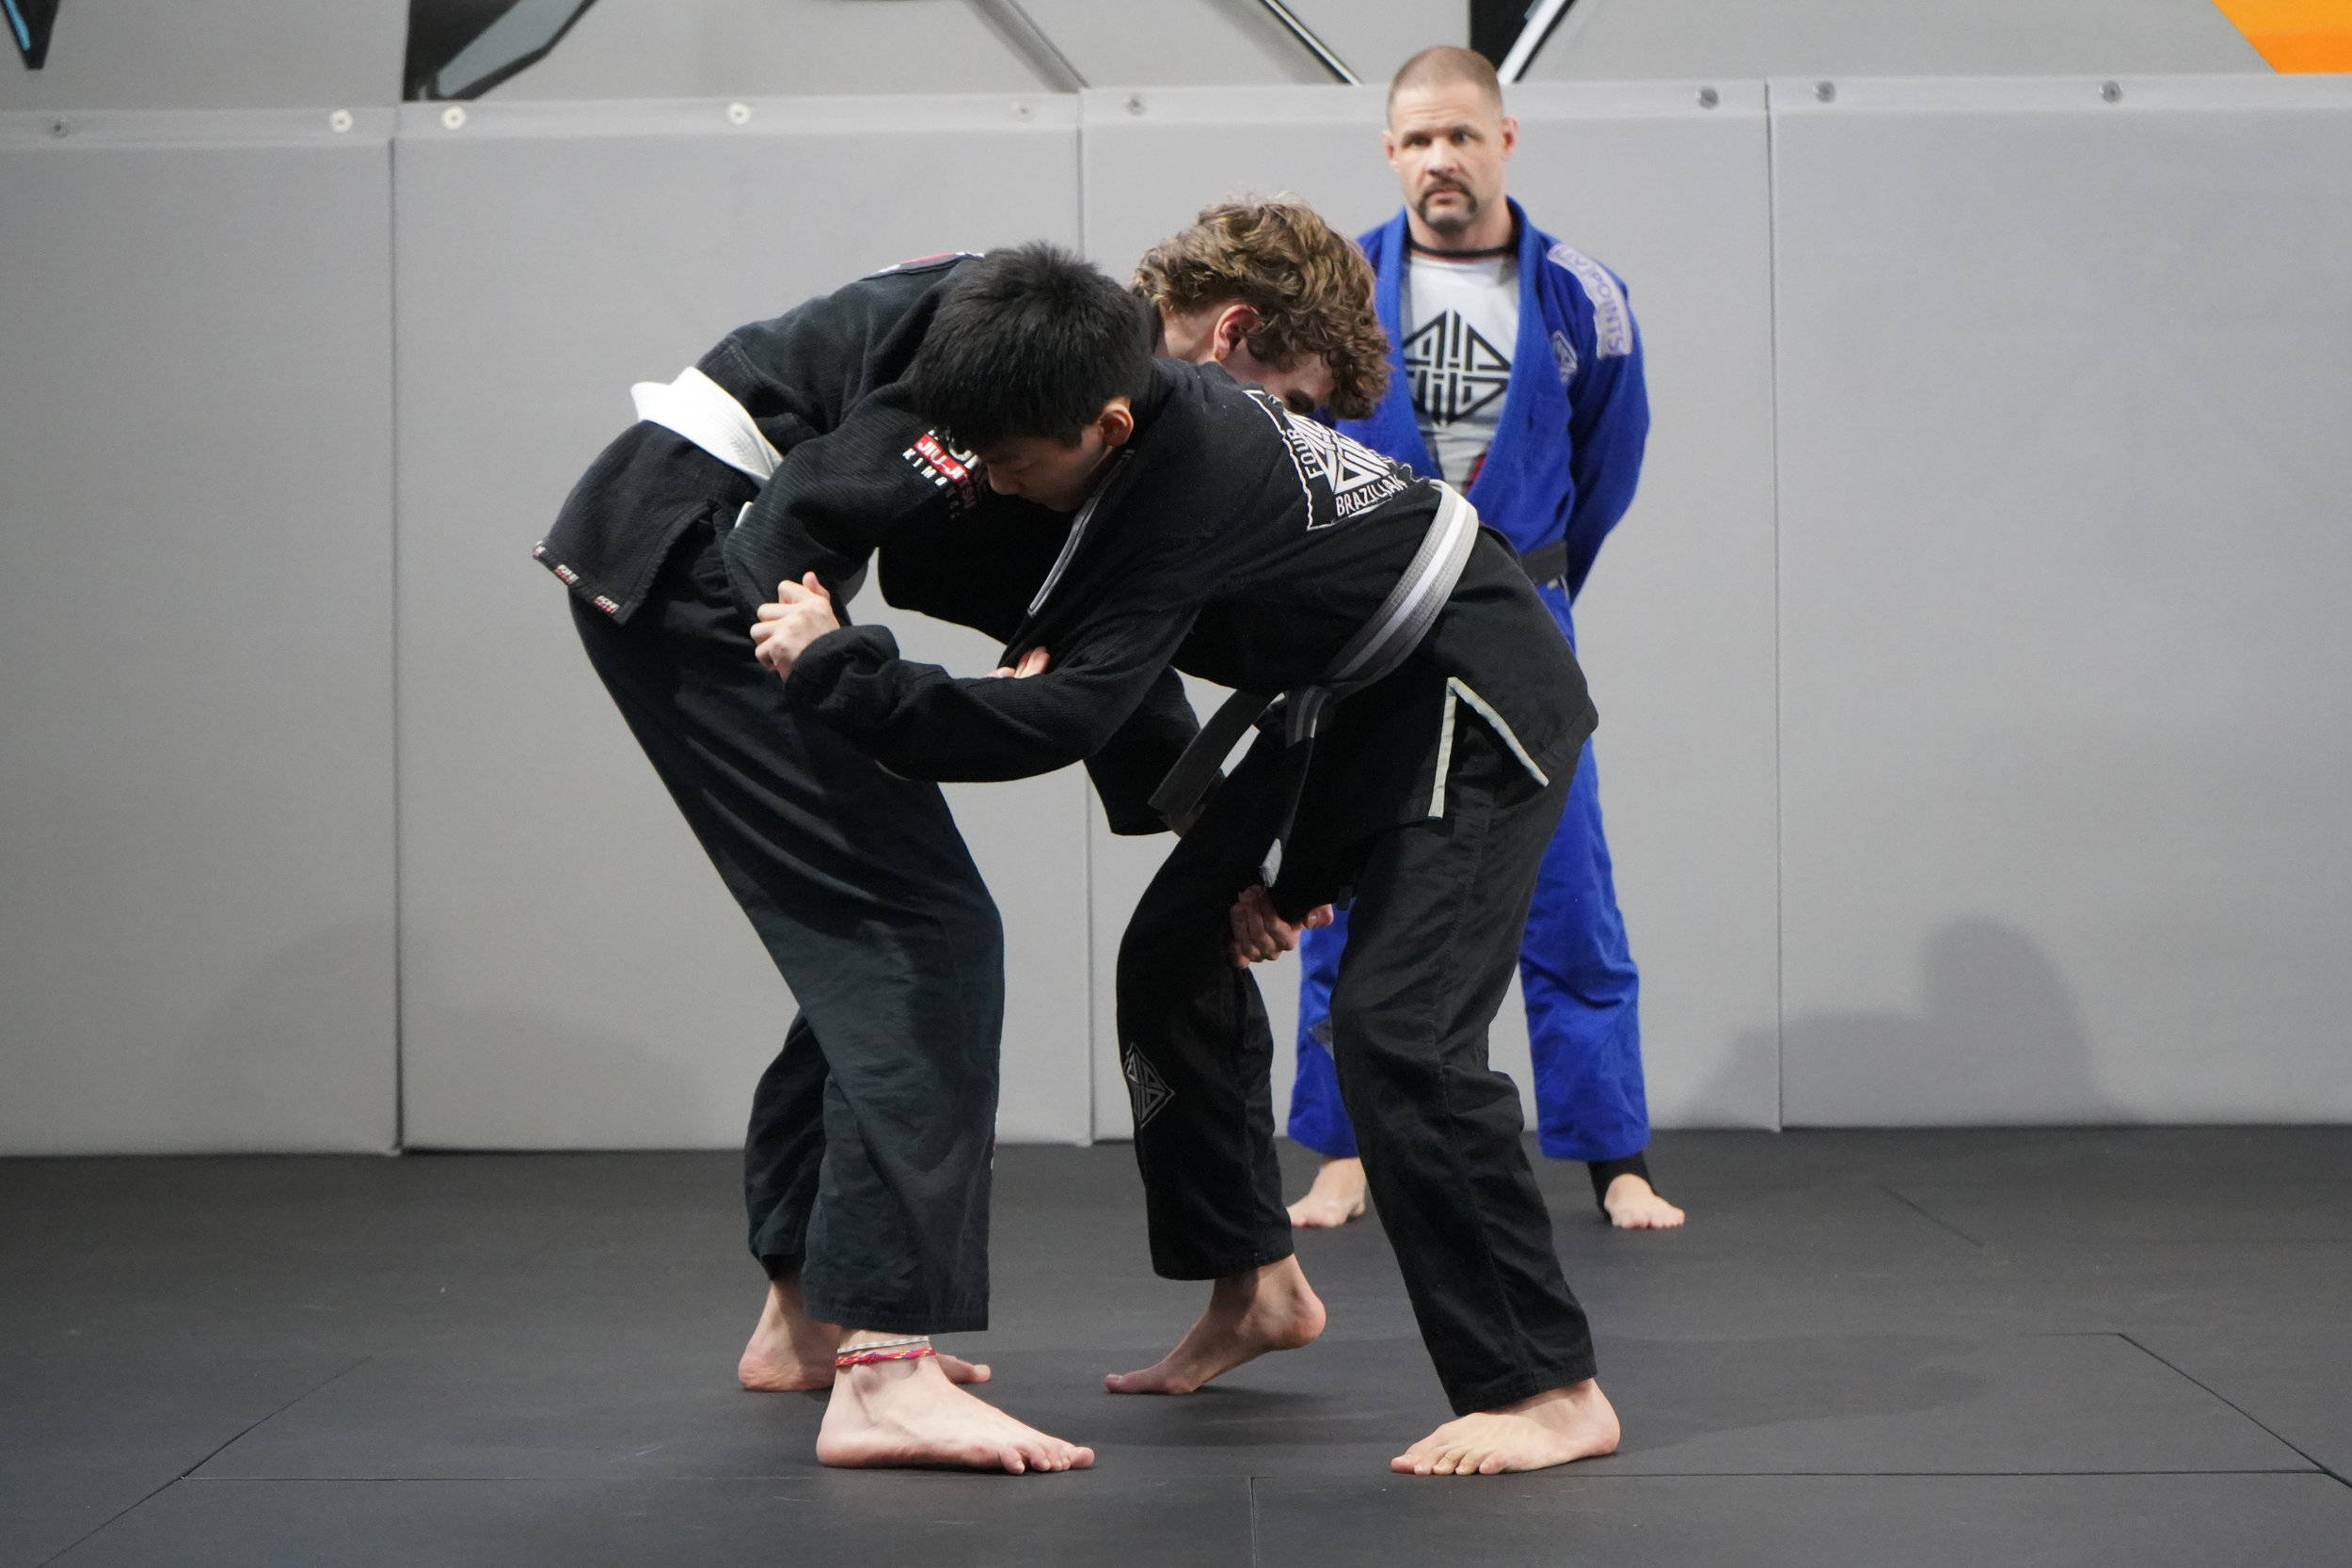 empowerment - In BJJ, mind and body are constantly challenged by obstacles among with resources to conquer them all. By being in full control of all; mind, body and attitude towards barriers, our students become more confident in the pursuit of their goals. We reinforce this transferring to all aspects of their lives.